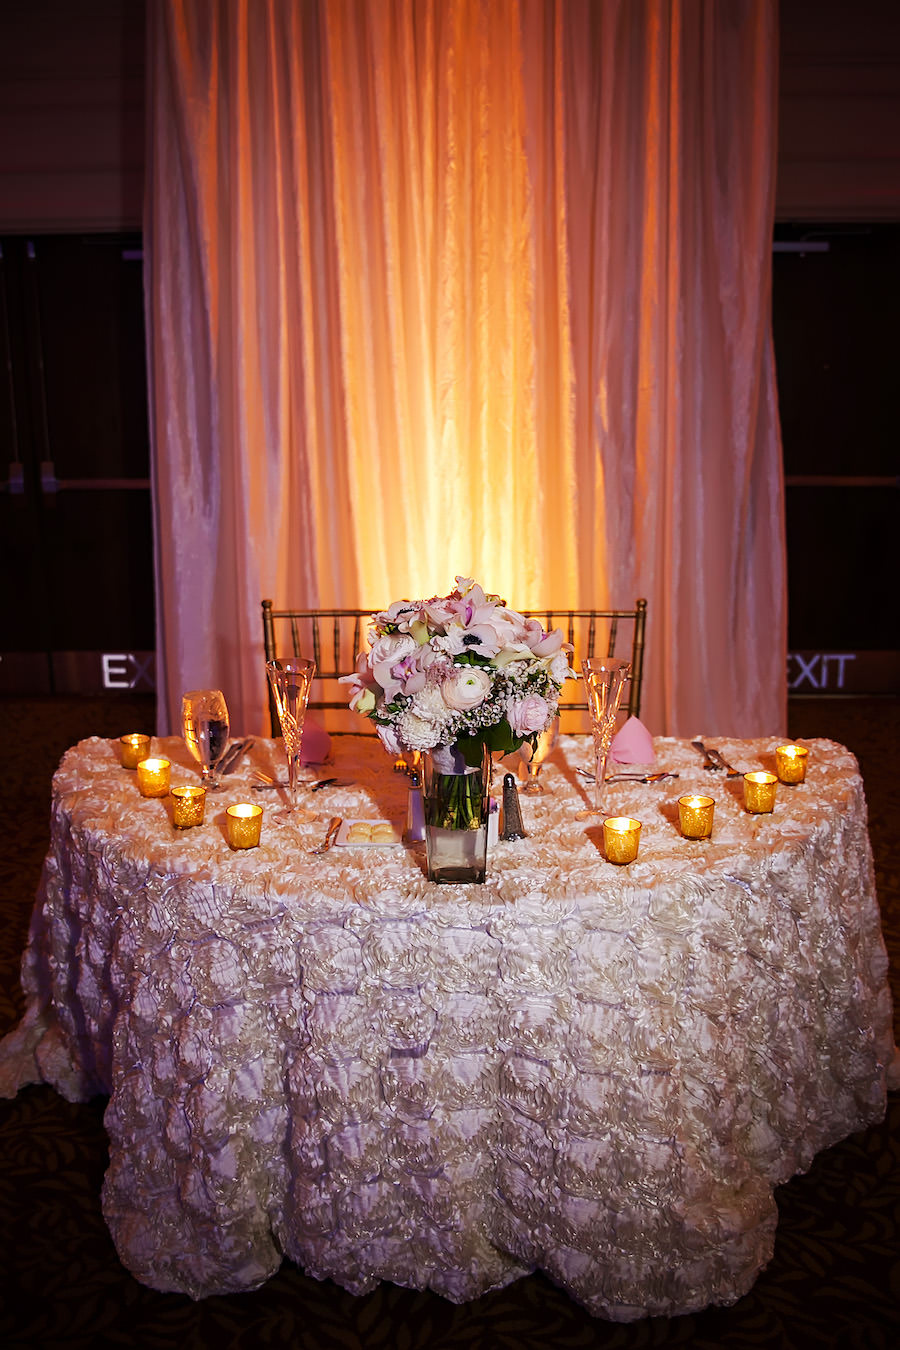 Tampa Wedding Reception Sweetheart Table Decor with Pastel, Blush Rosette Linen, Candles, and Ivory Bridal Bouquet | | Tampa Wedding Linen Rentals Over the Top Linens